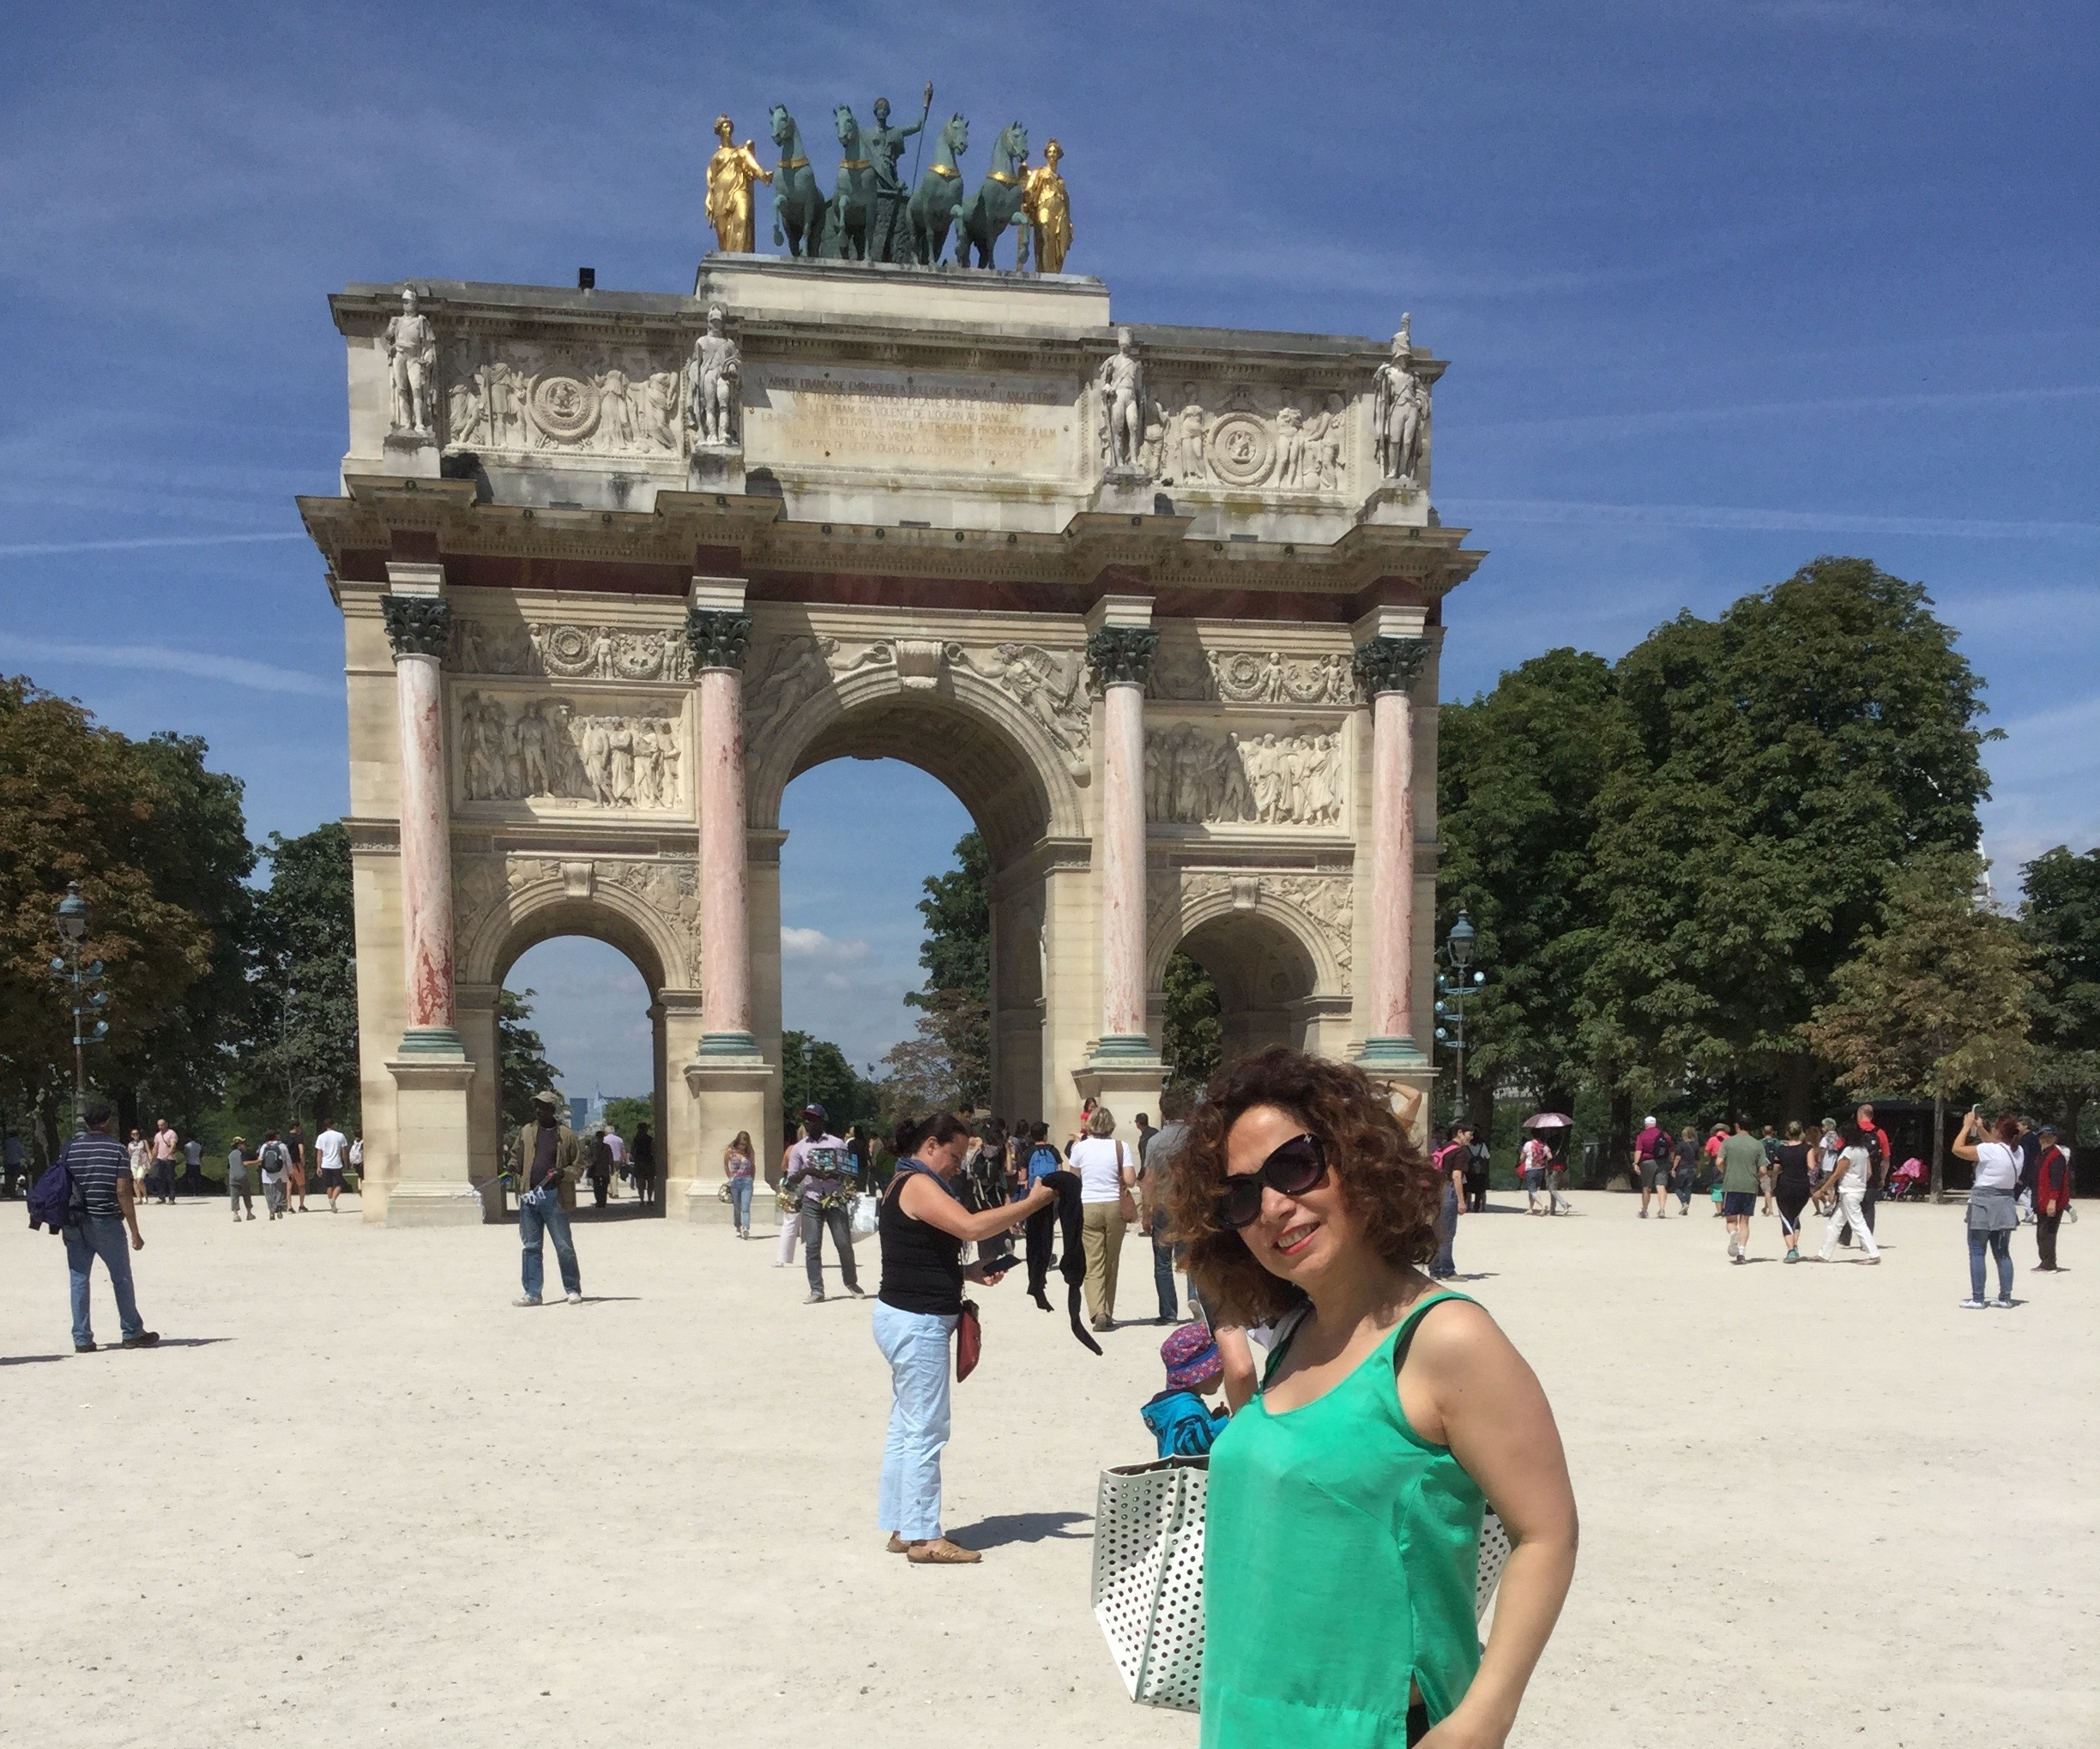 M e in front of  Arc de Triomphe du Carrousel . It was built between 1806 and 1808 to commemorate  Napoleon 's military victories of the previous year.